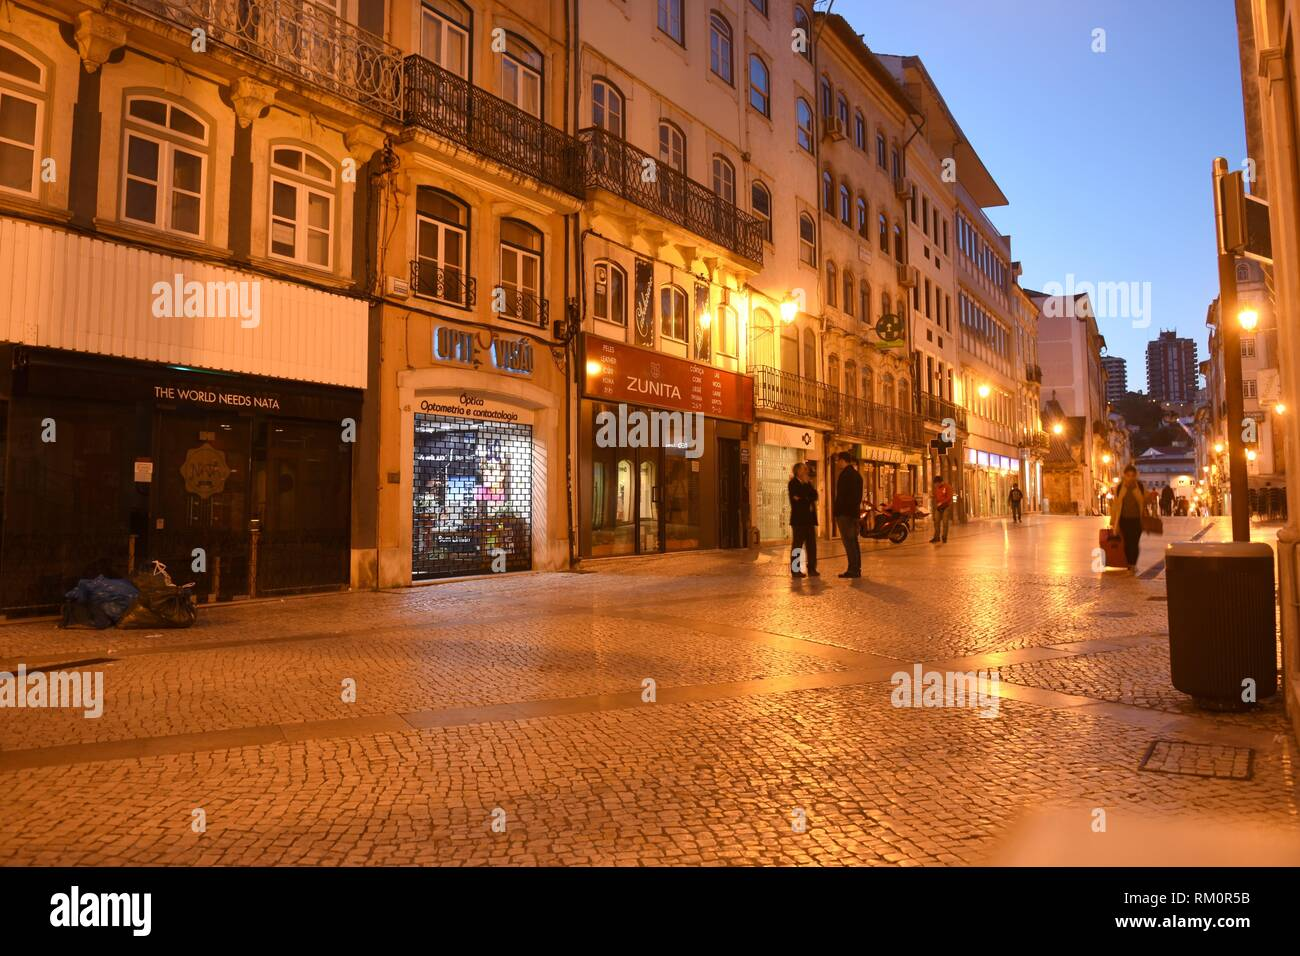 commercial street in the center of the city of Coimbra, Portugal. - Stock Image